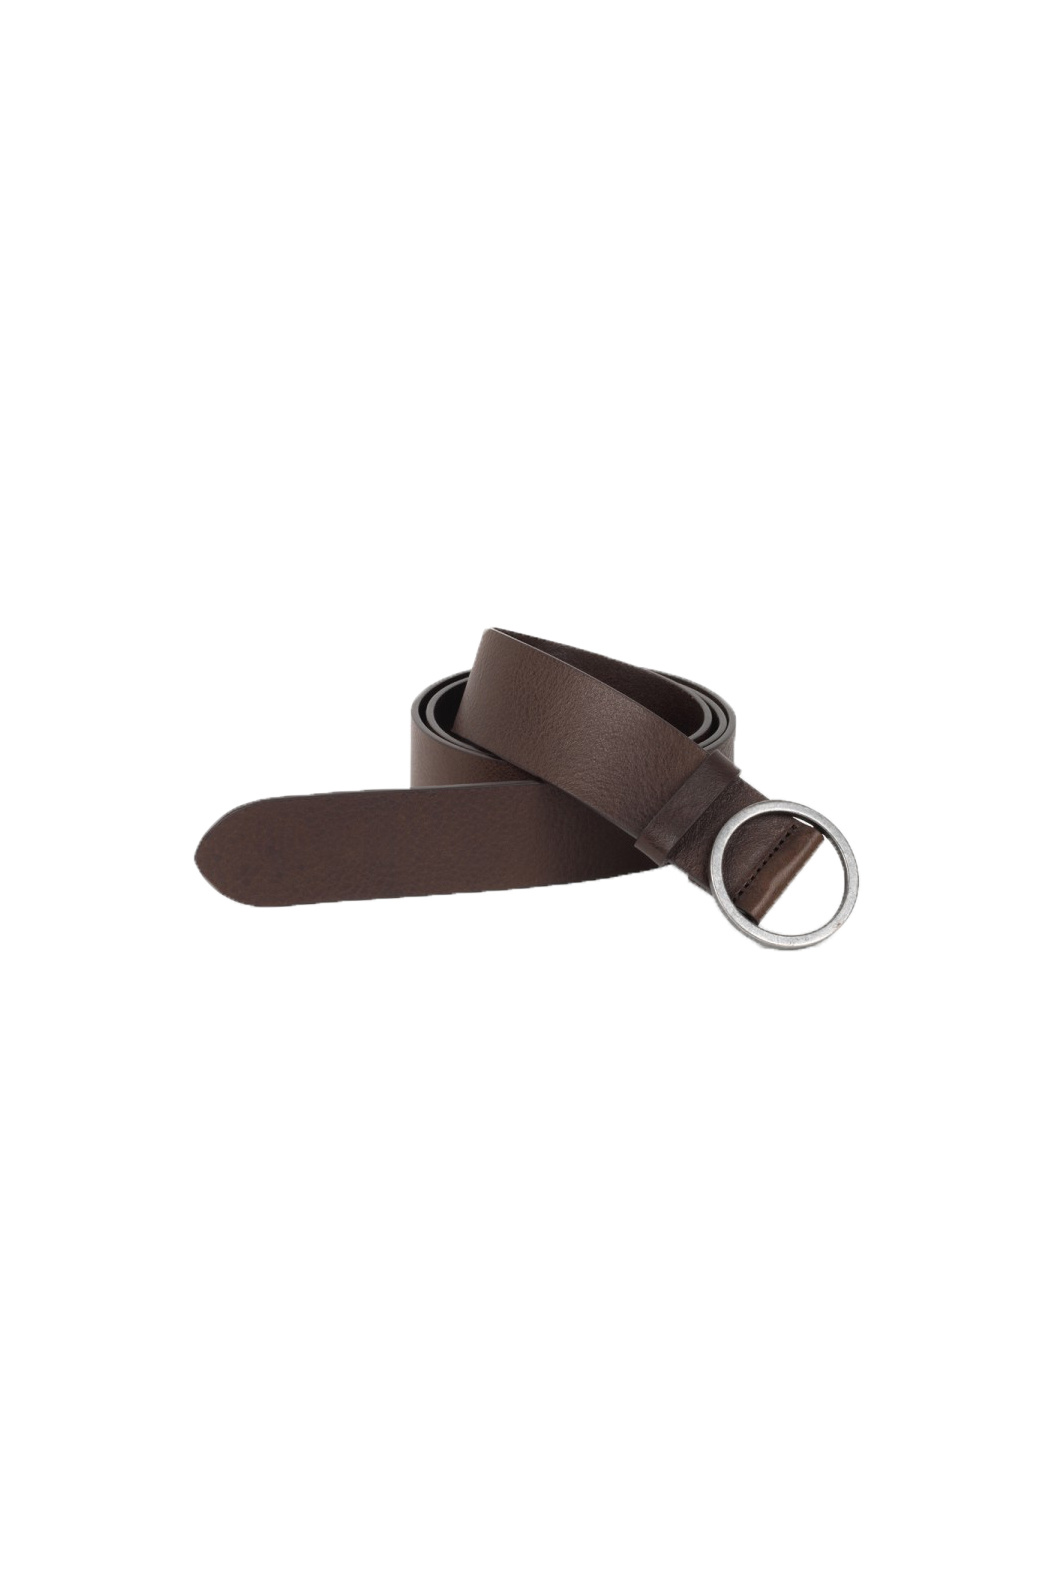 Atimoy Belt Leather - Brown-1